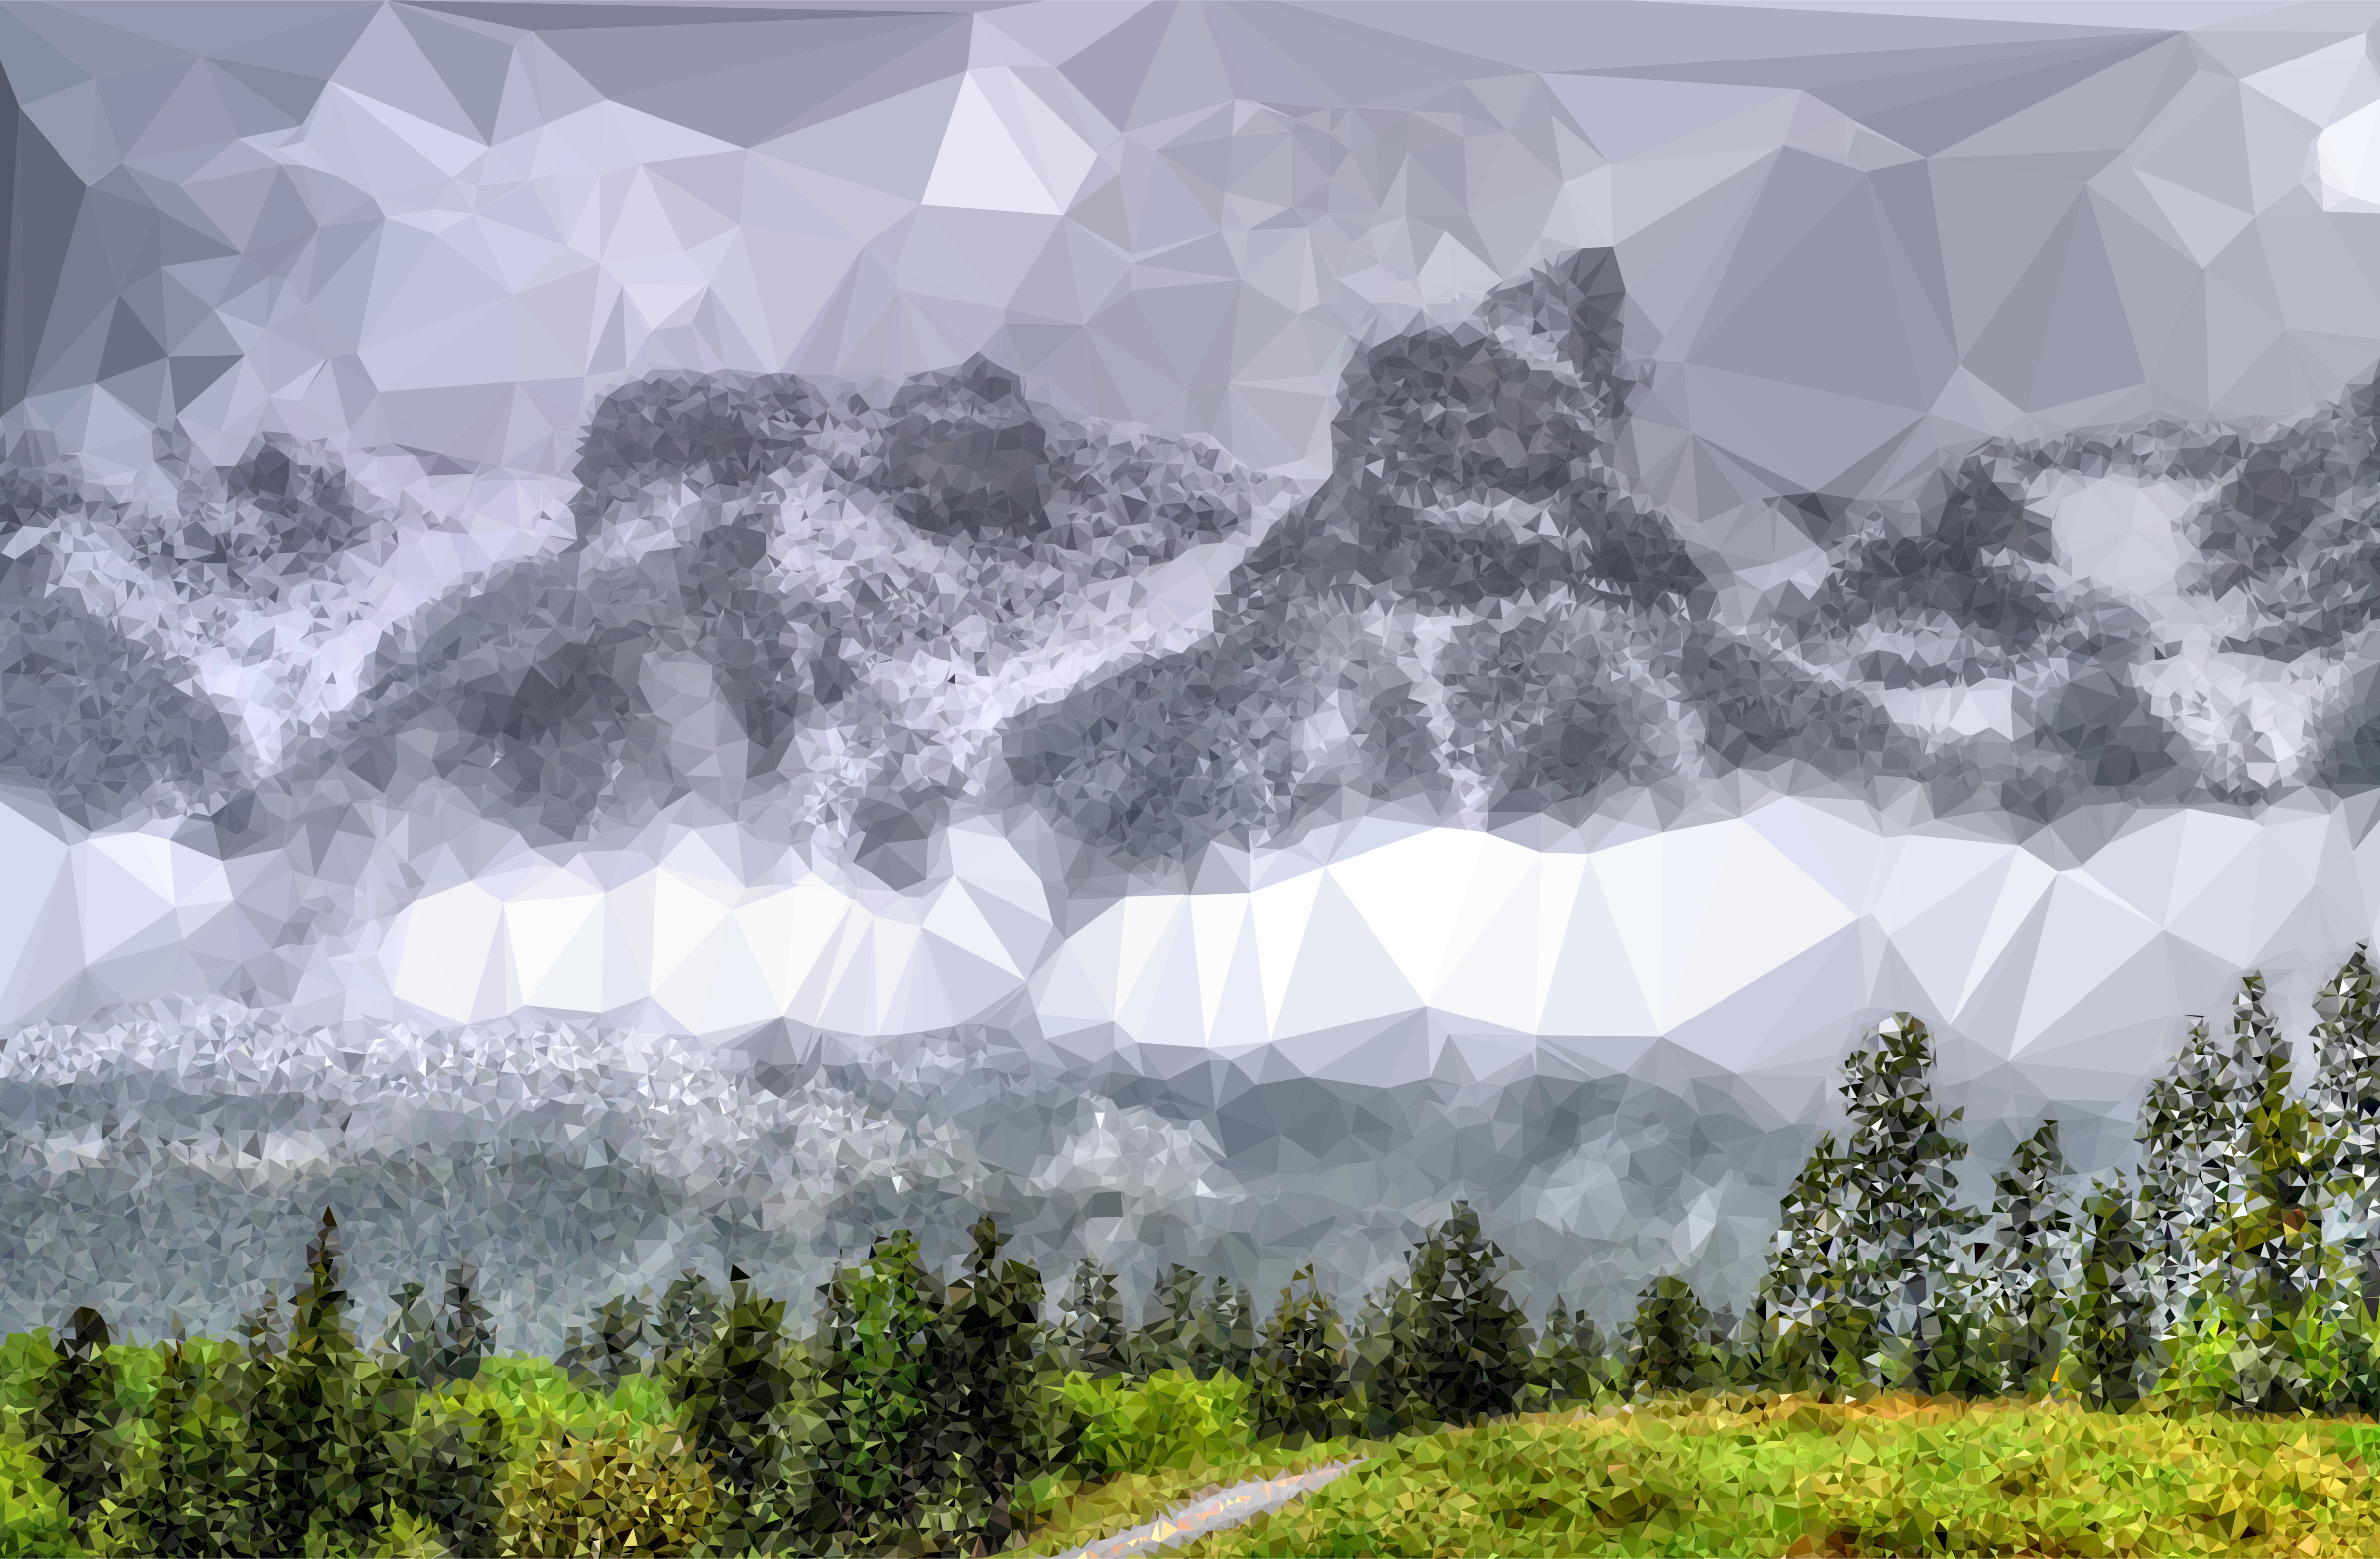 Fog clipart. Low poly enshrouded mountains